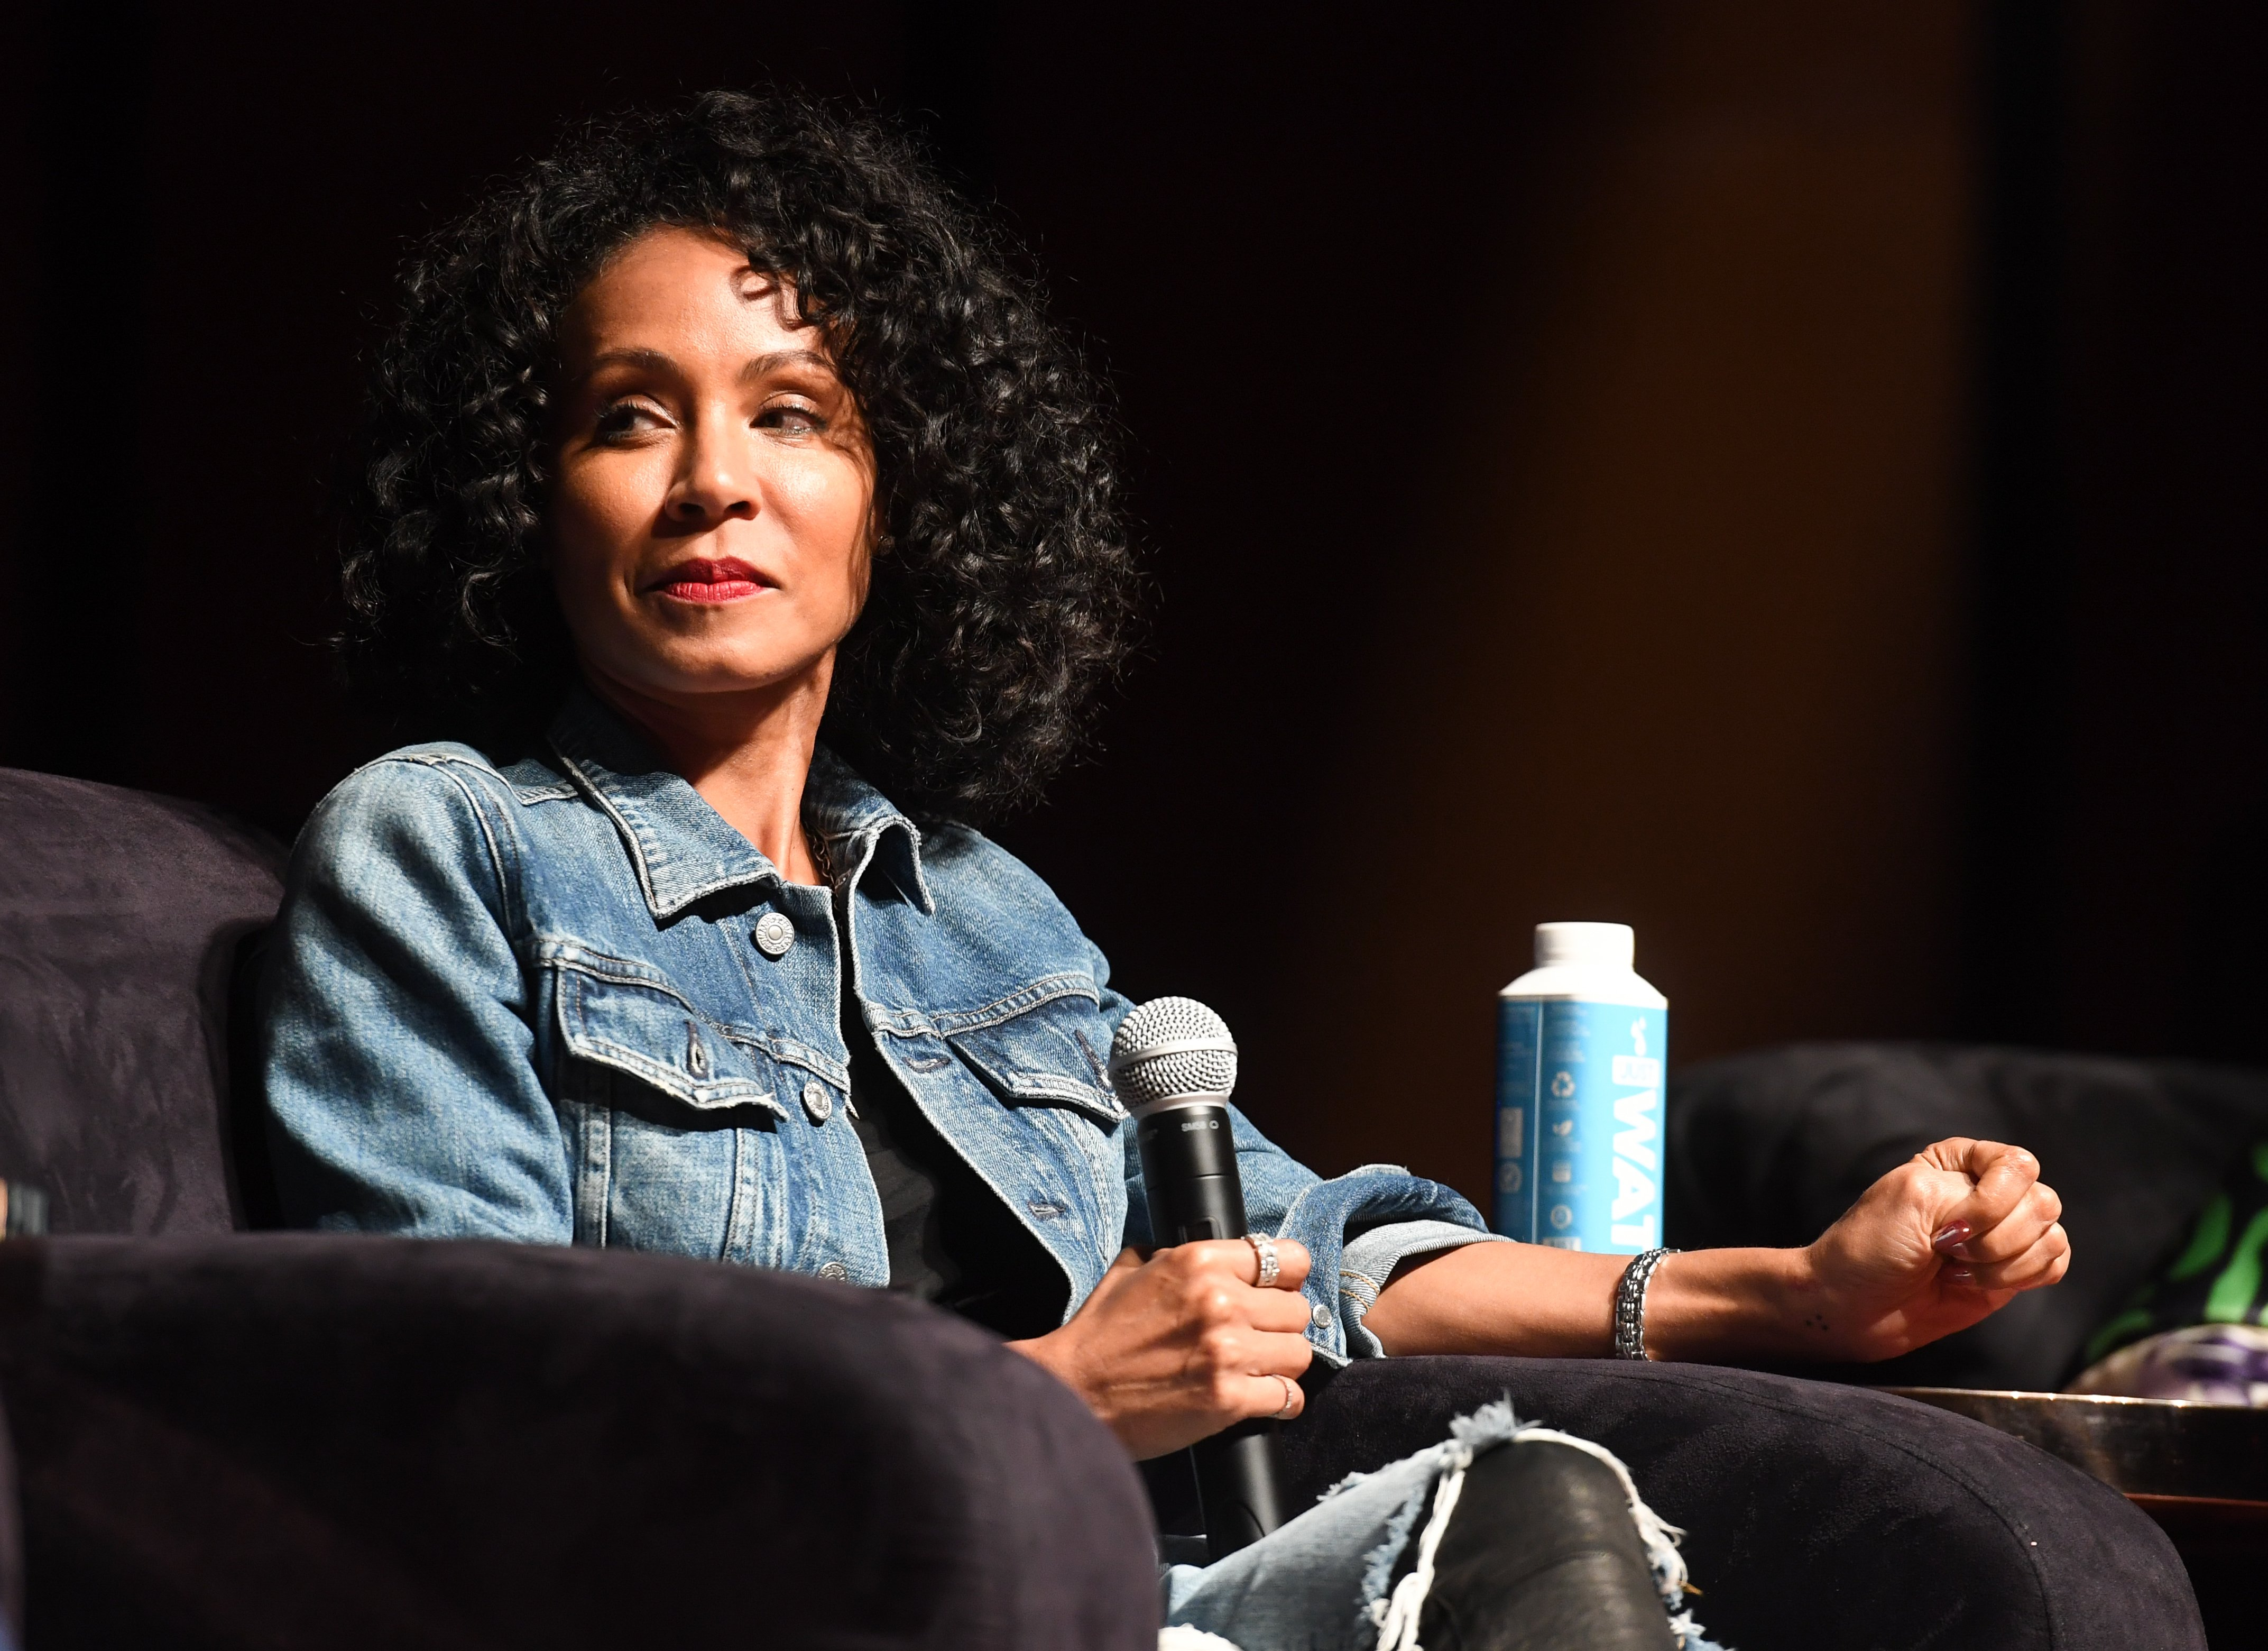 Image Credits: Getty Images / Paras Griffin | Actress Jada Pinkett Smith speaks onstage at Careers In Entertainment Tour - Atlanta at Morehouse College on October 20, 2017 in Atlanta, Georgia.